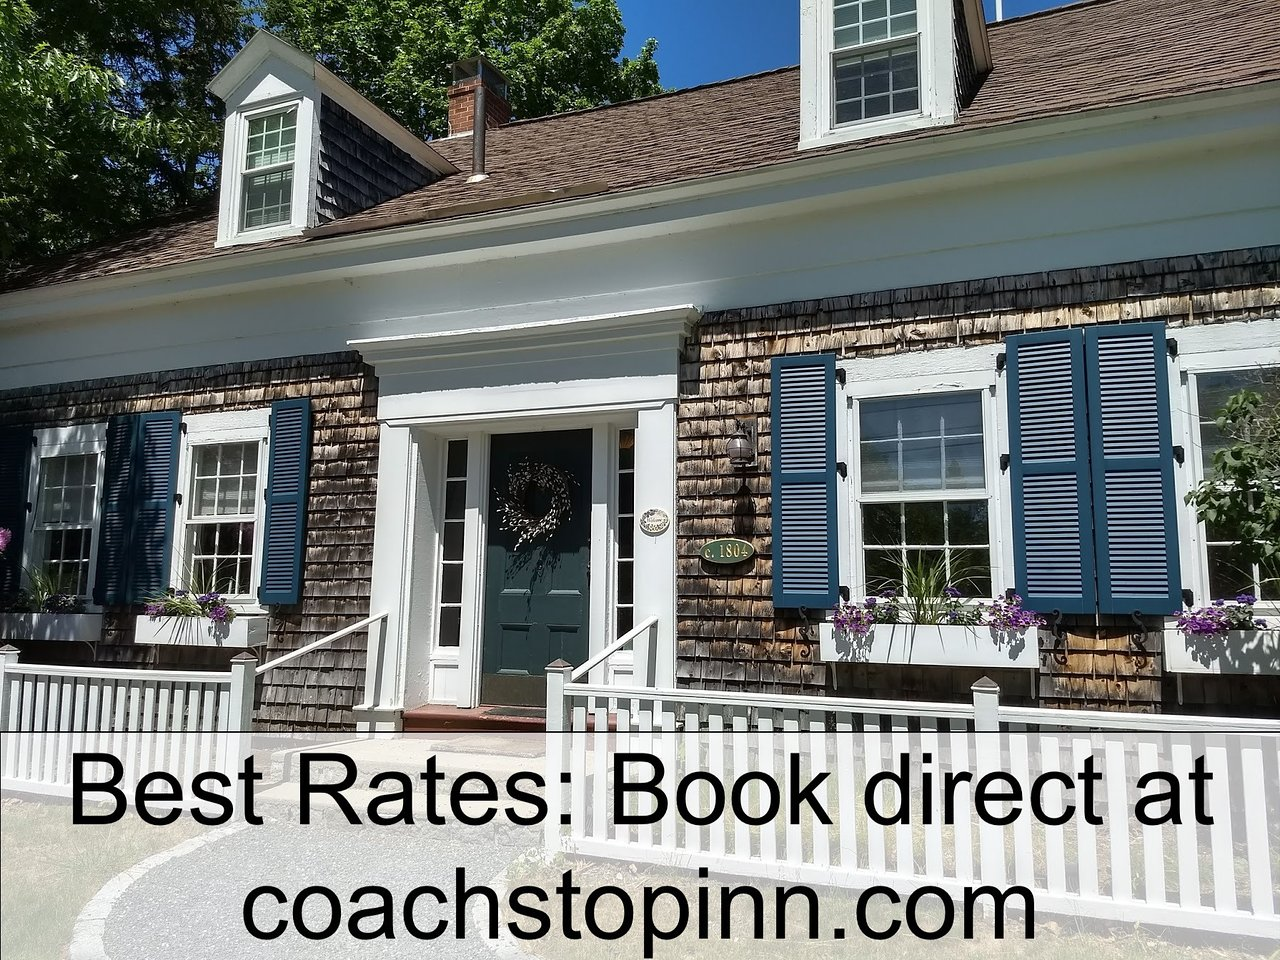 coach stop inn bed and breakfast updated 2019 prices b b reviews rh tripadvisor com